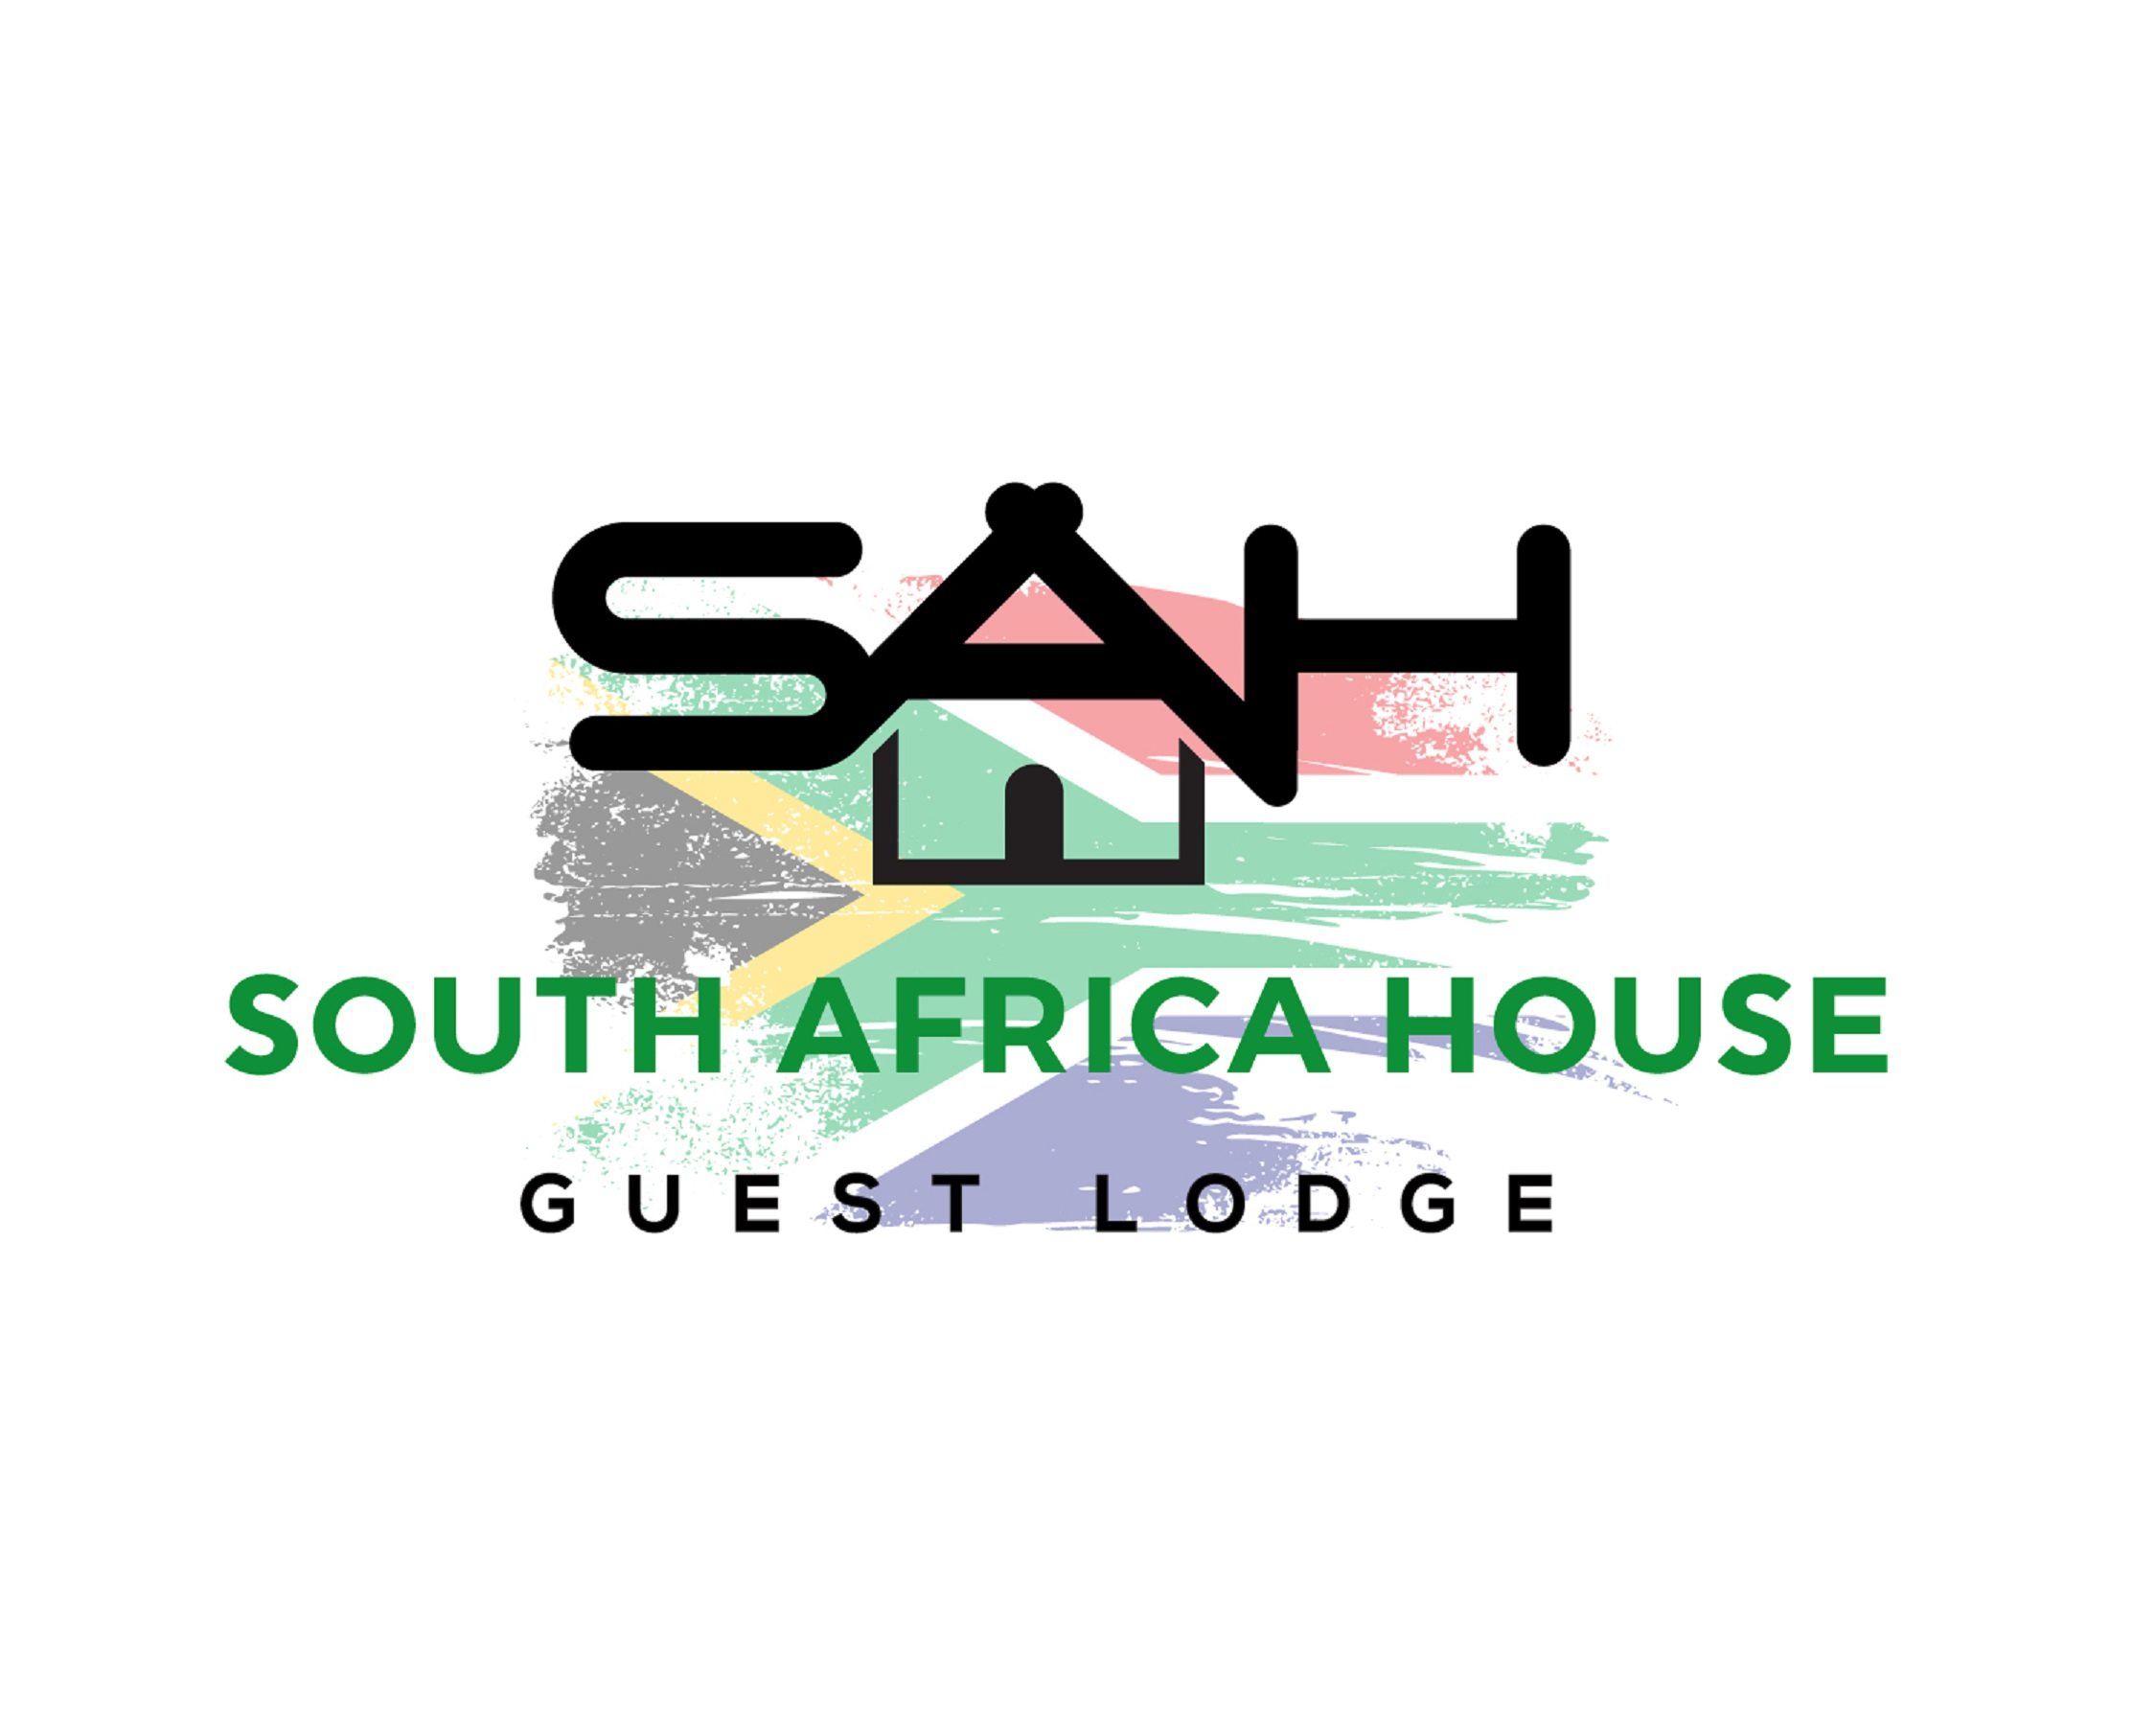 South Africa House Guest Lodge